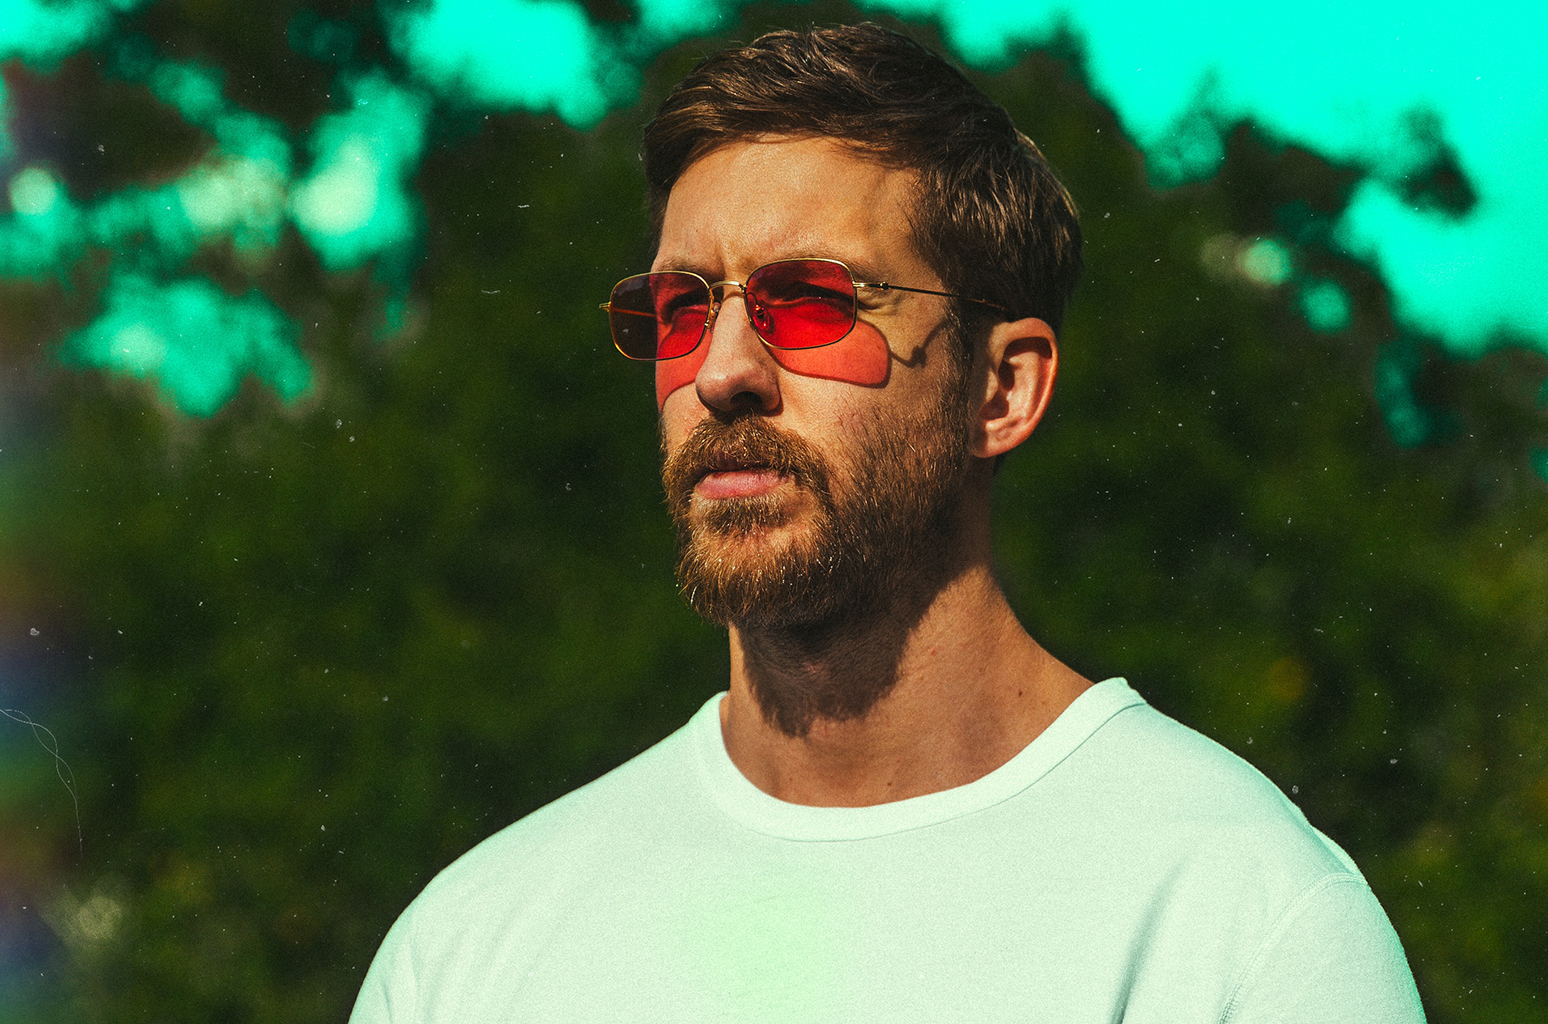 Album of the Day: Calvin Harris – Funk Wav Bounces Vol. 1